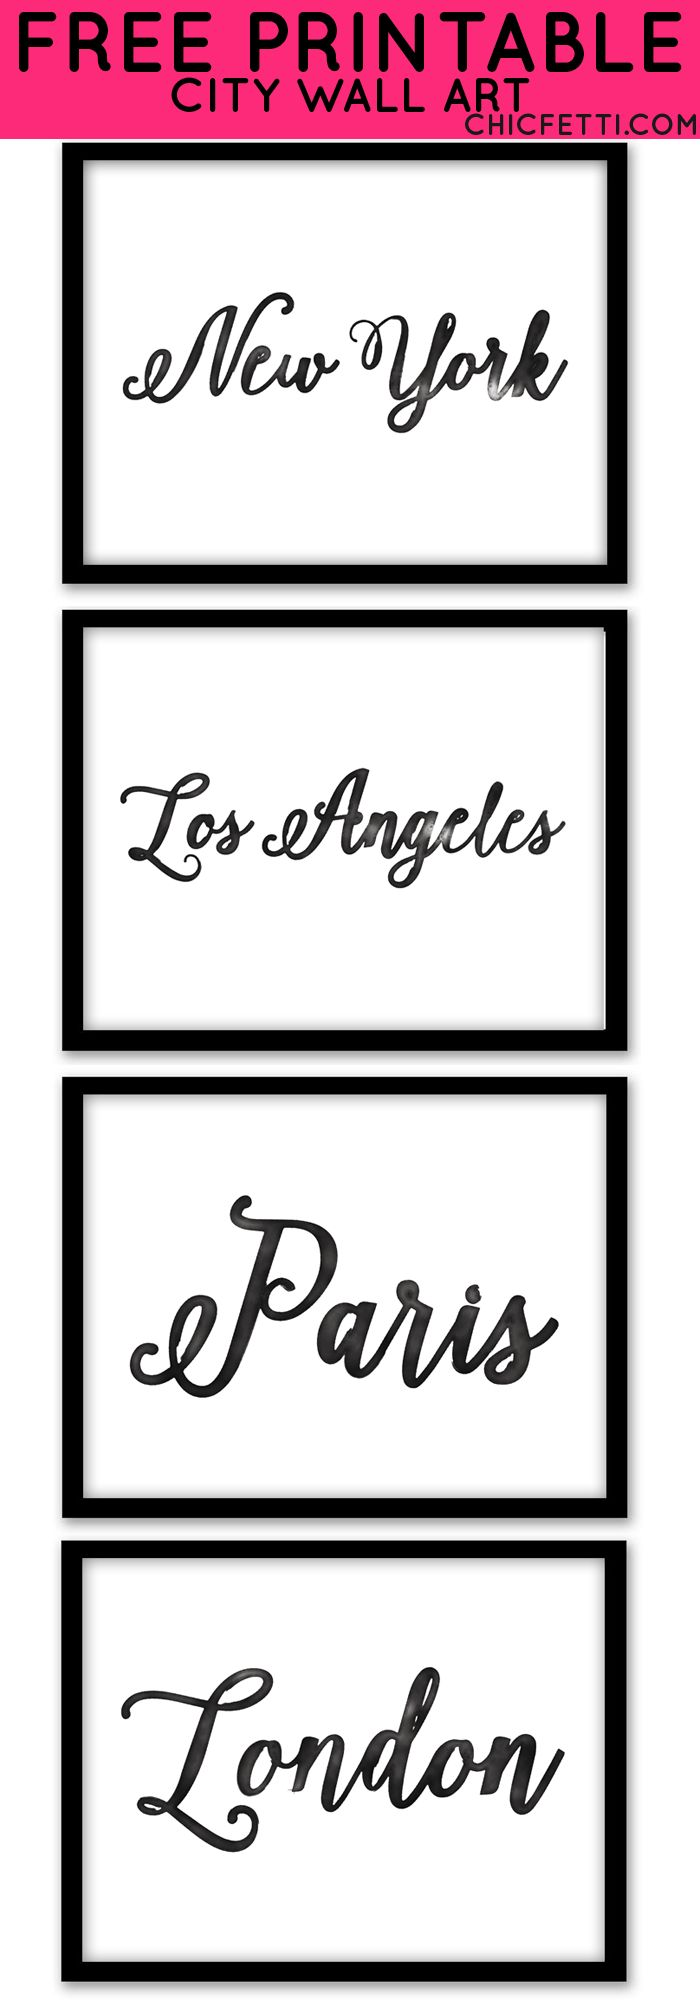 Free Printable City Wall Art from @chicfetti - Easy wall art DIY! Just print & frame!